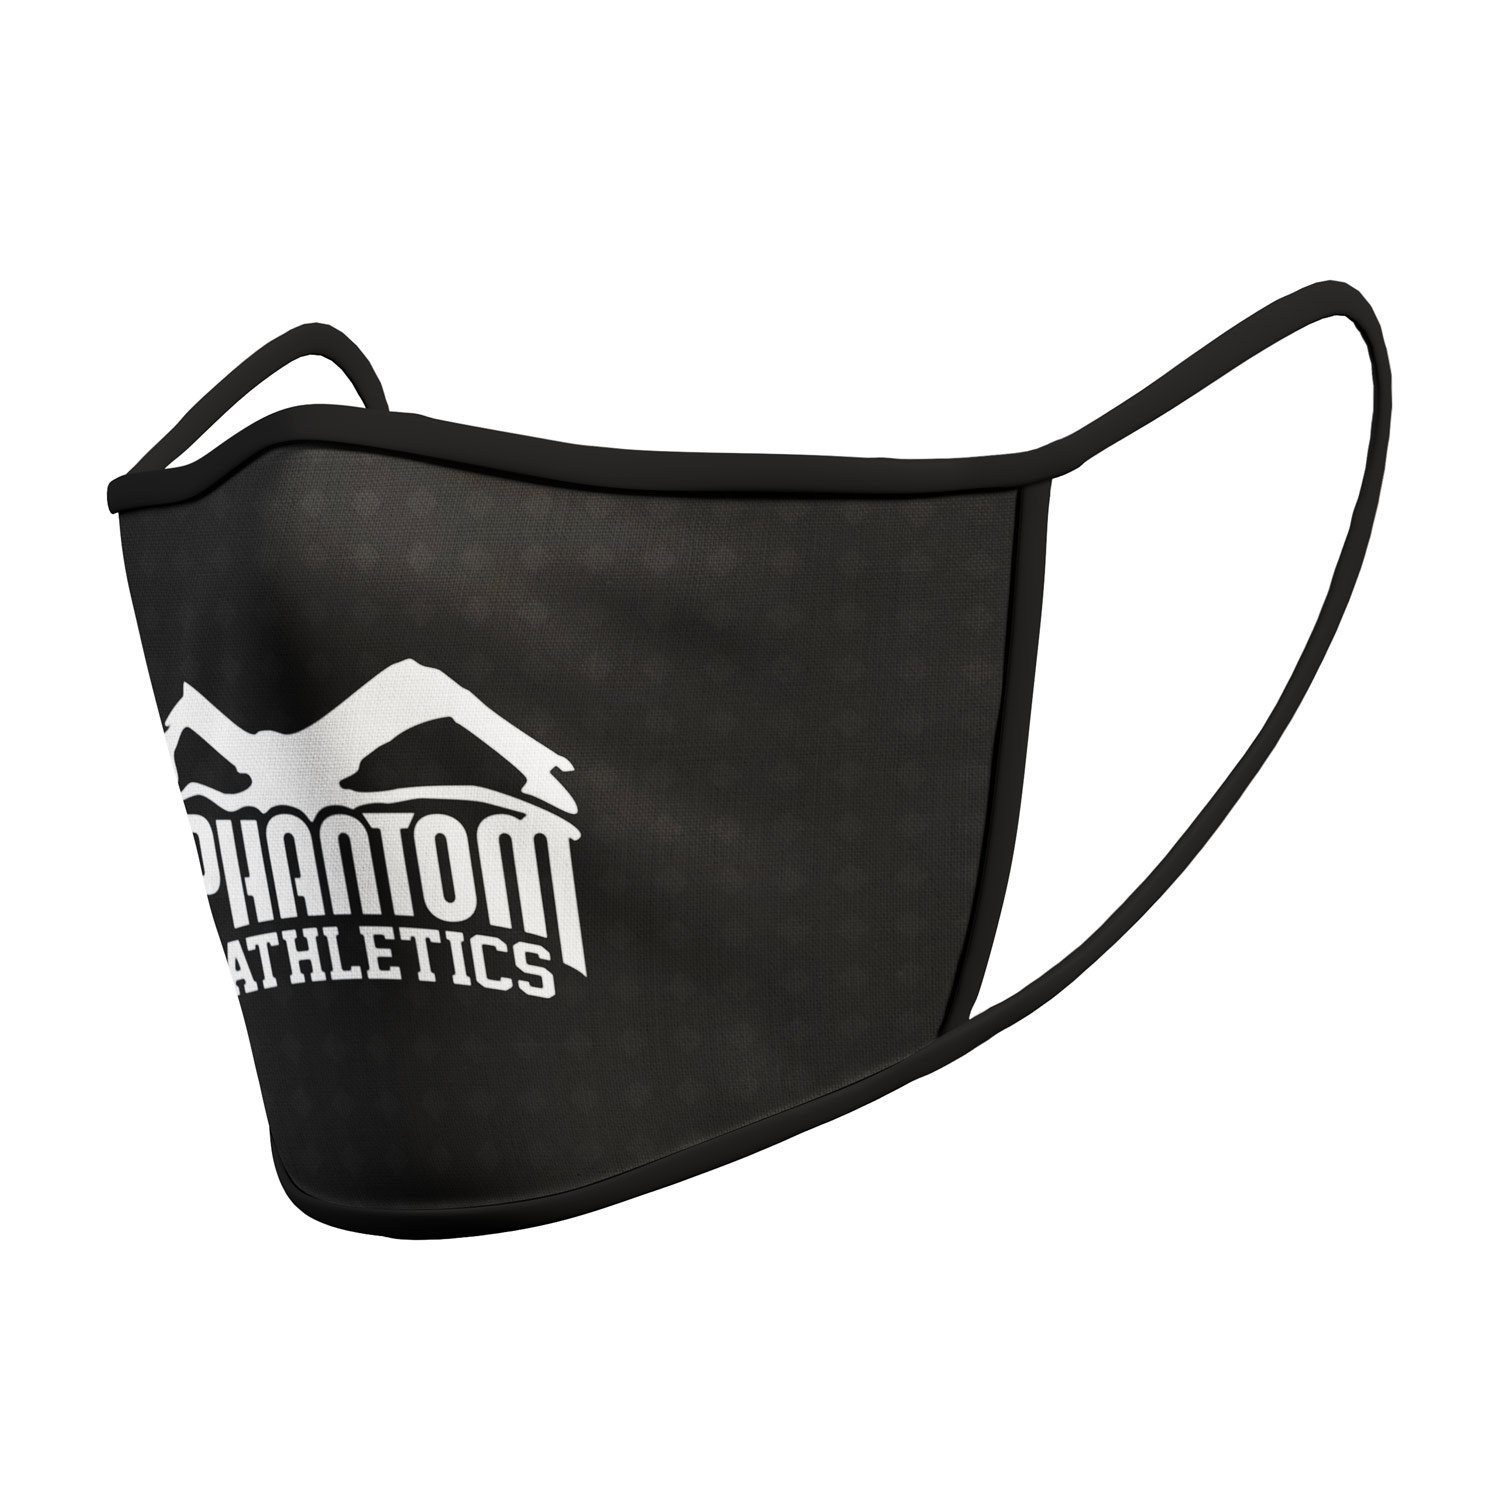 Masque de protection Phantom Athetics Noir